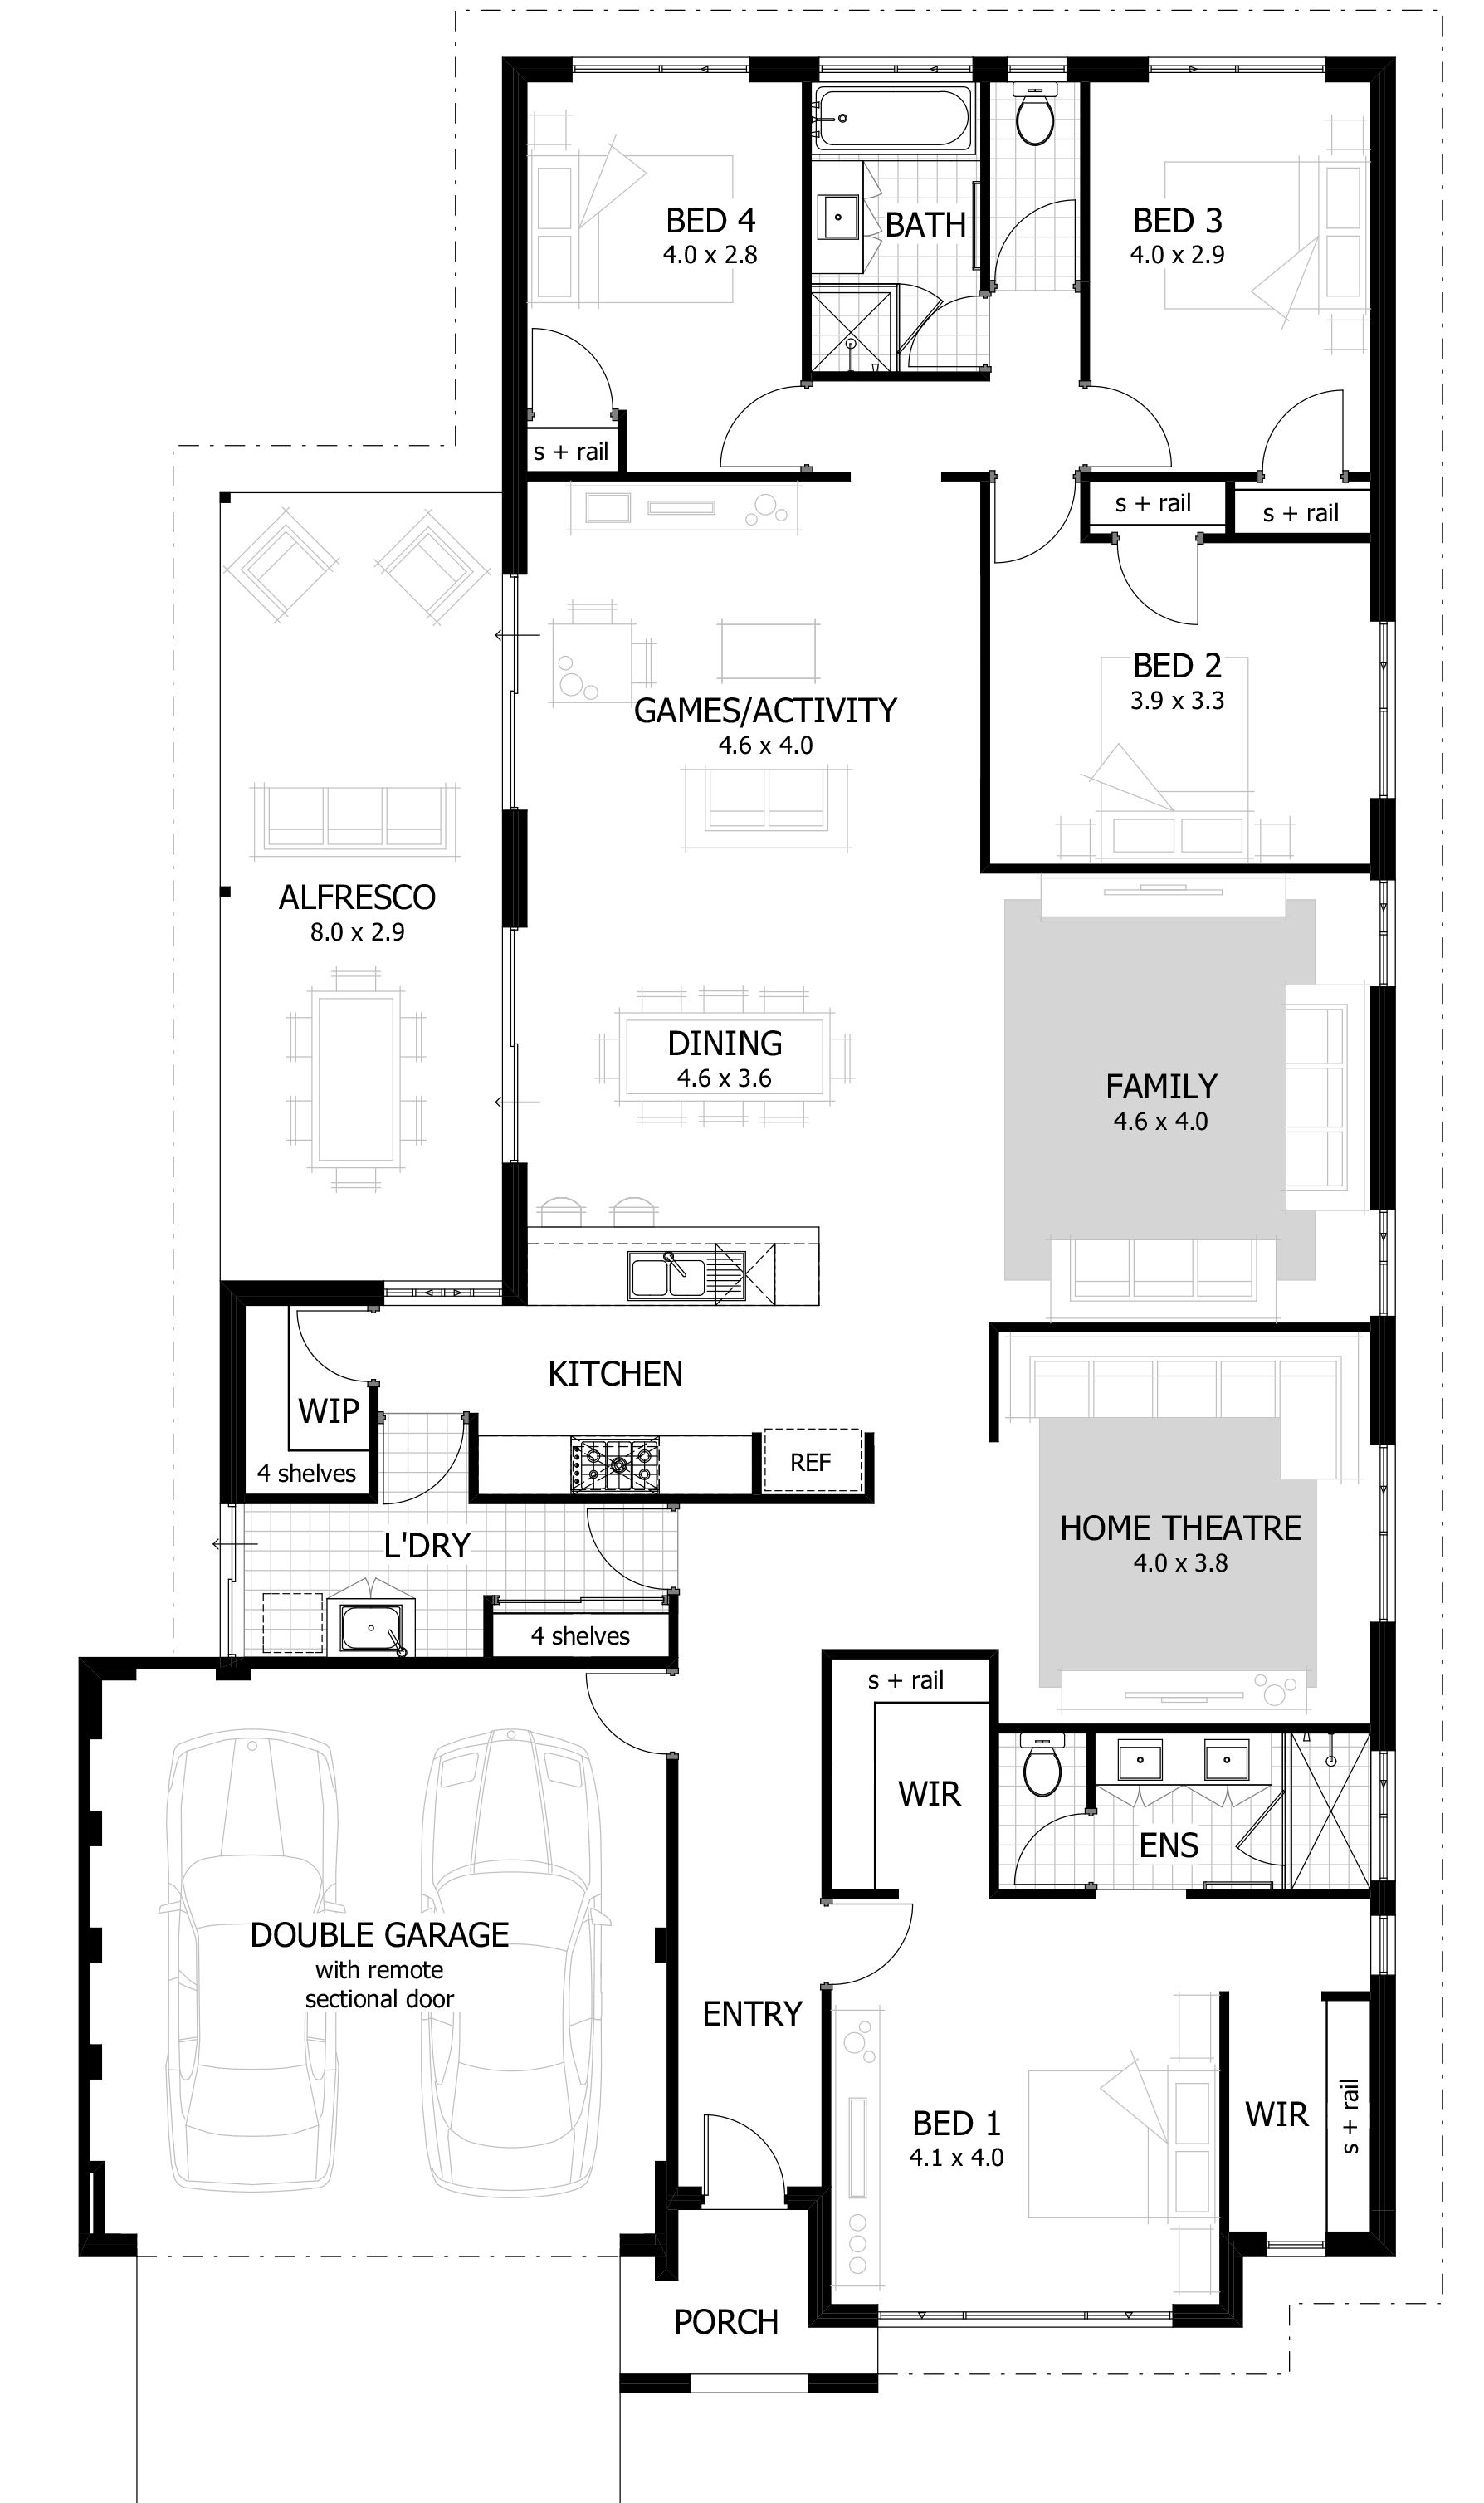 4 Bedroom House Plans Home Designs House Plans South Africa 4 Bedroom House Plans Bedroom House Plans